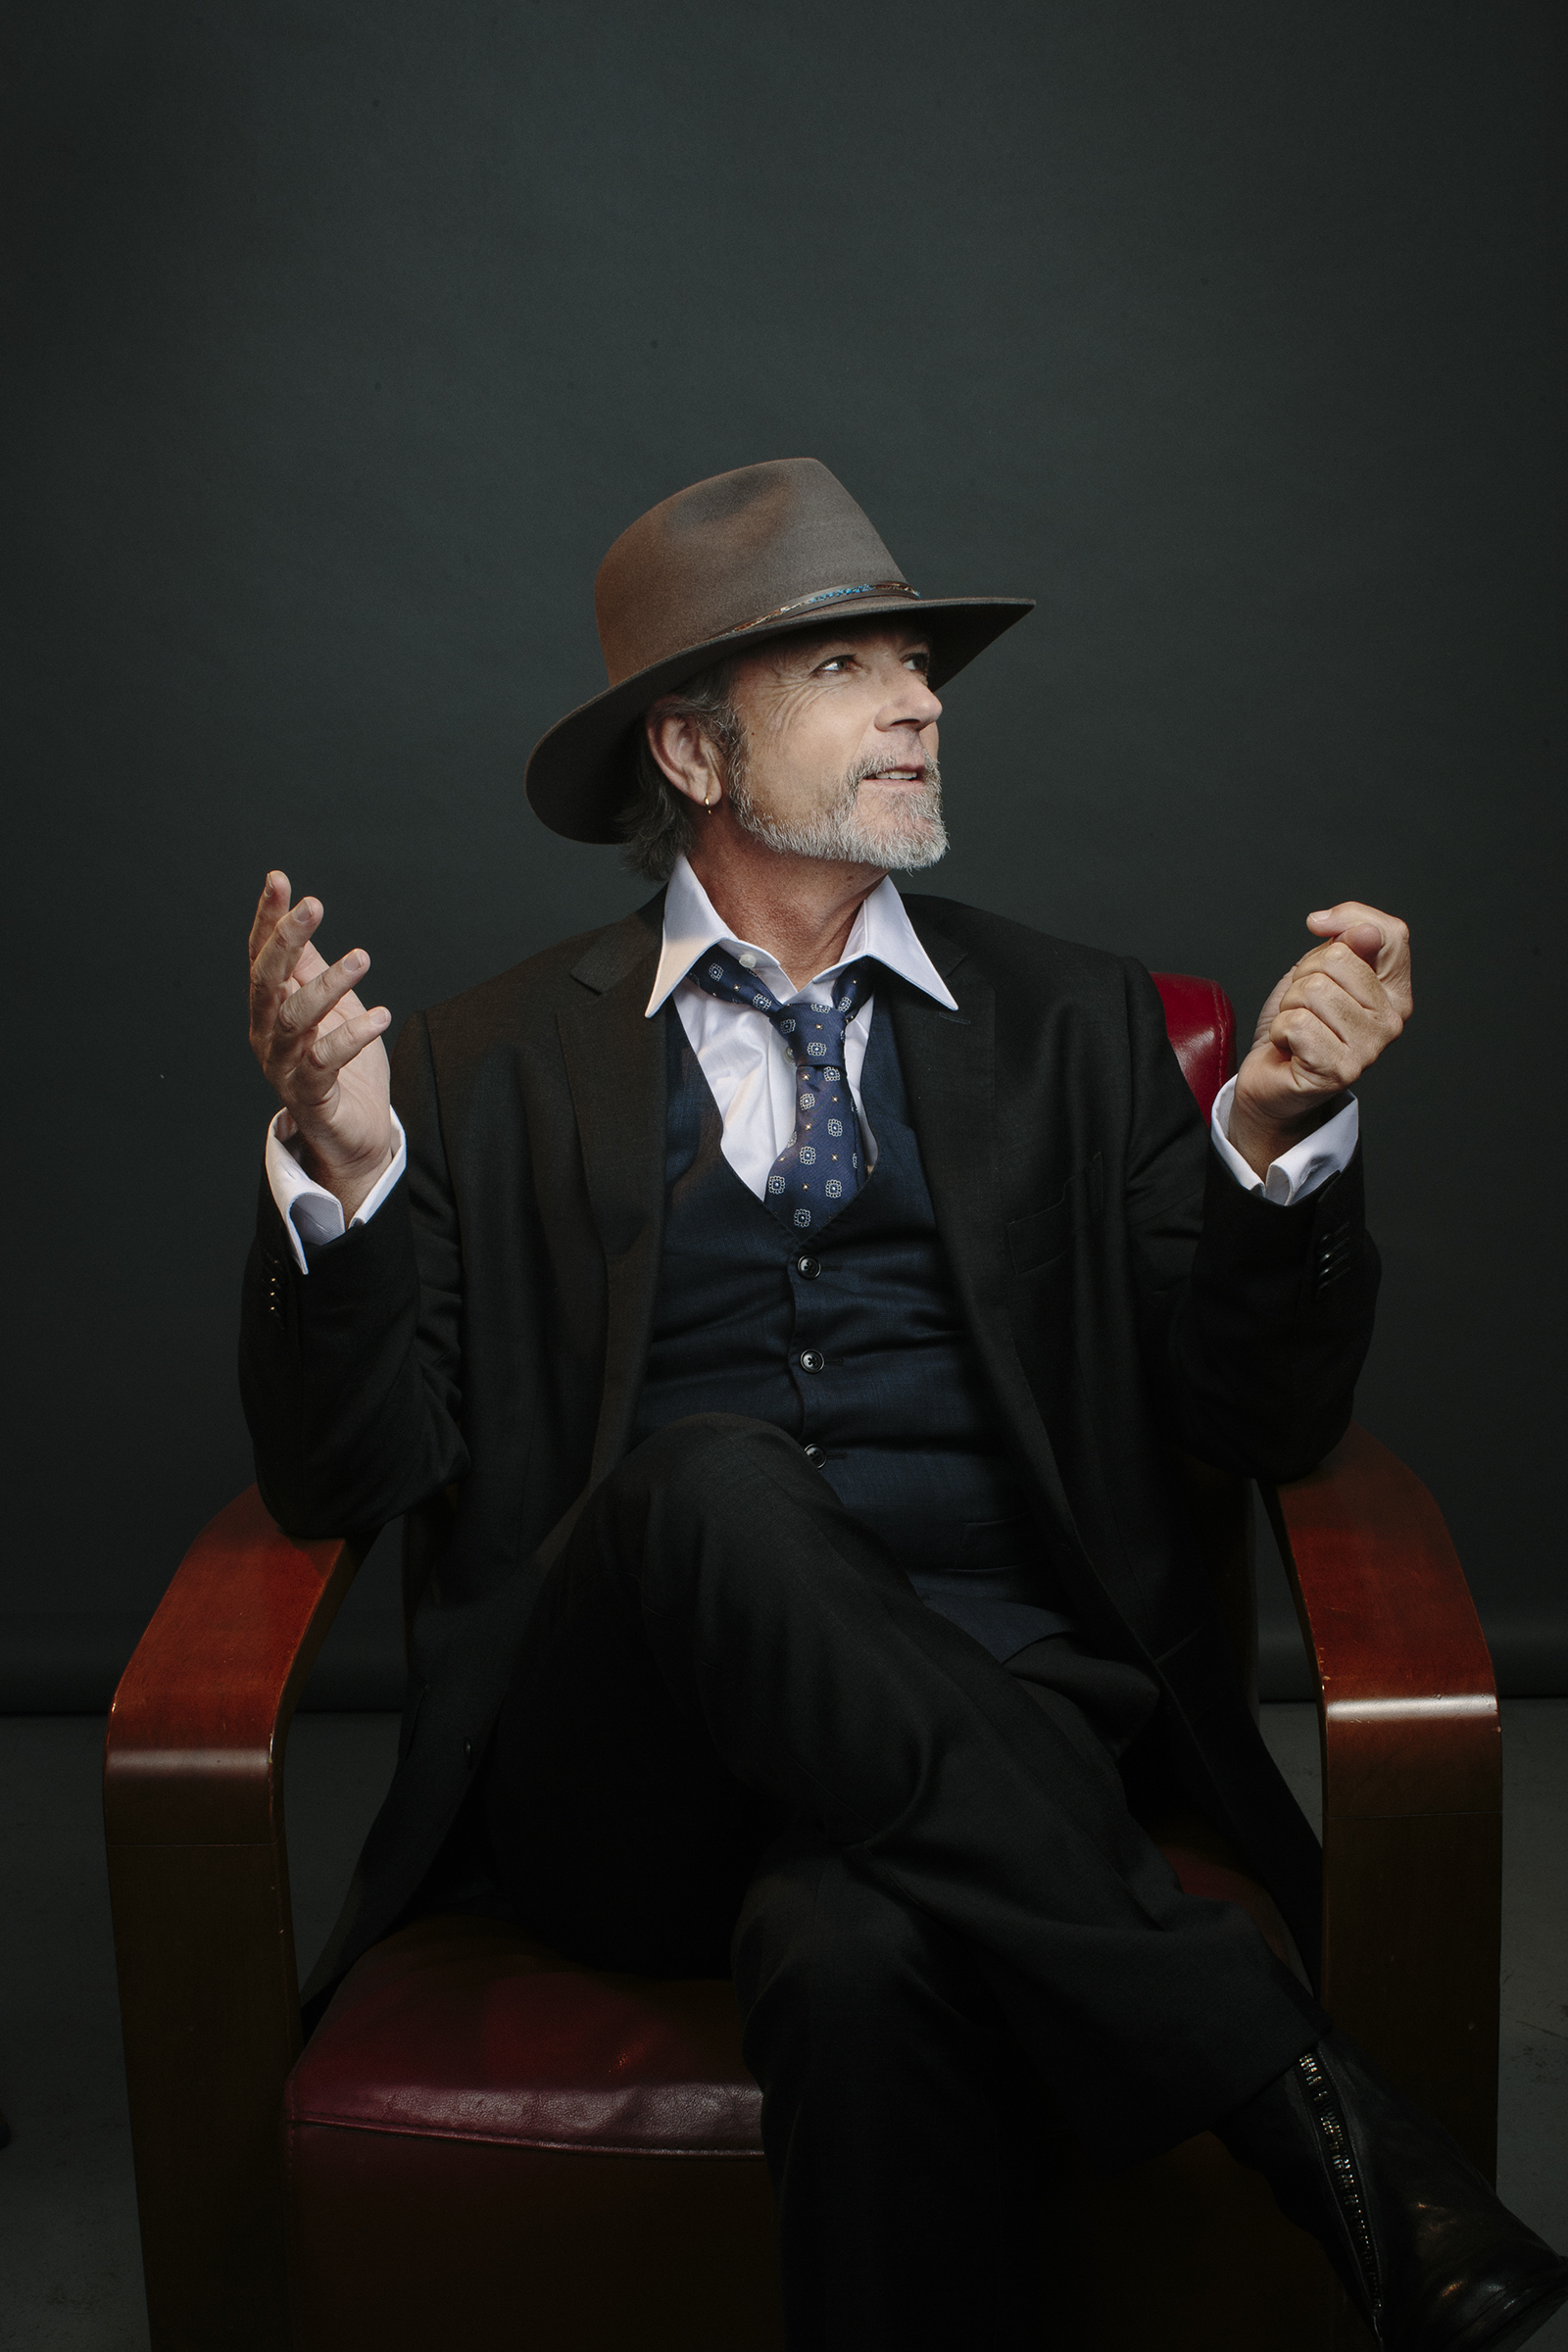 Steve Kilbey : The Church for The National Treasures Series. Photographer Toby Burrows. Zoë Porter